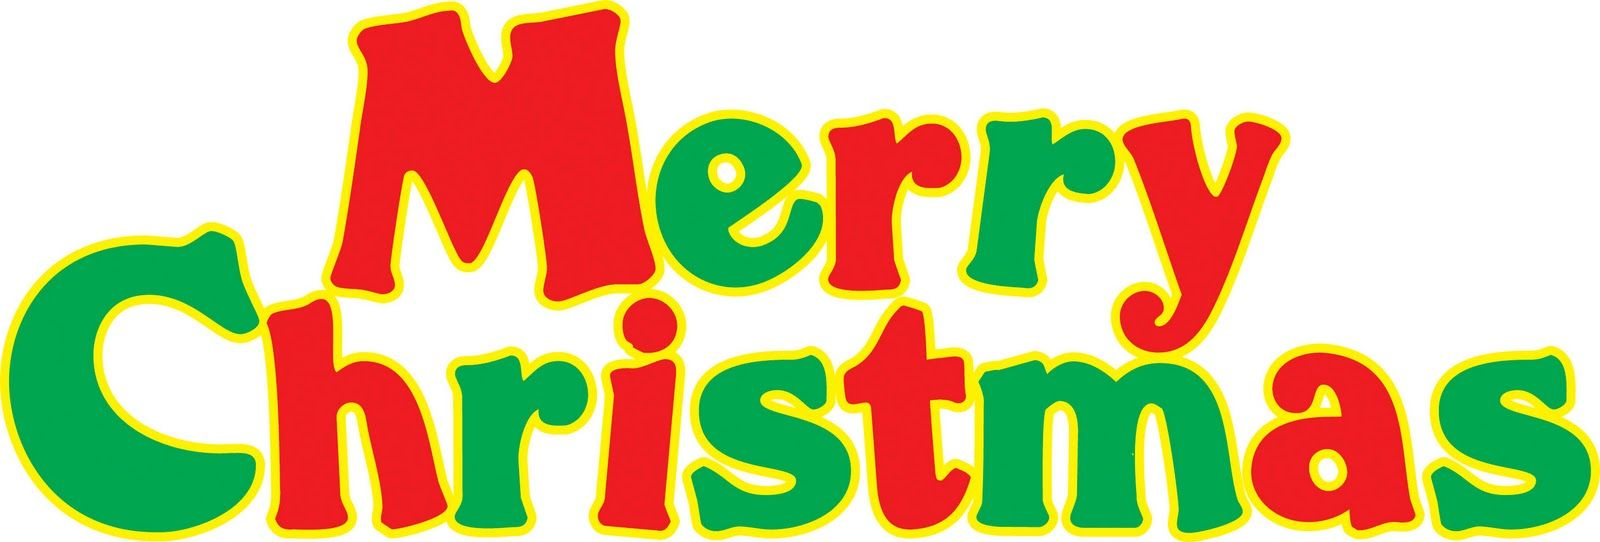 Merry Christmas Clip Art | Use these free images for your websites, art  projects, reports, and .